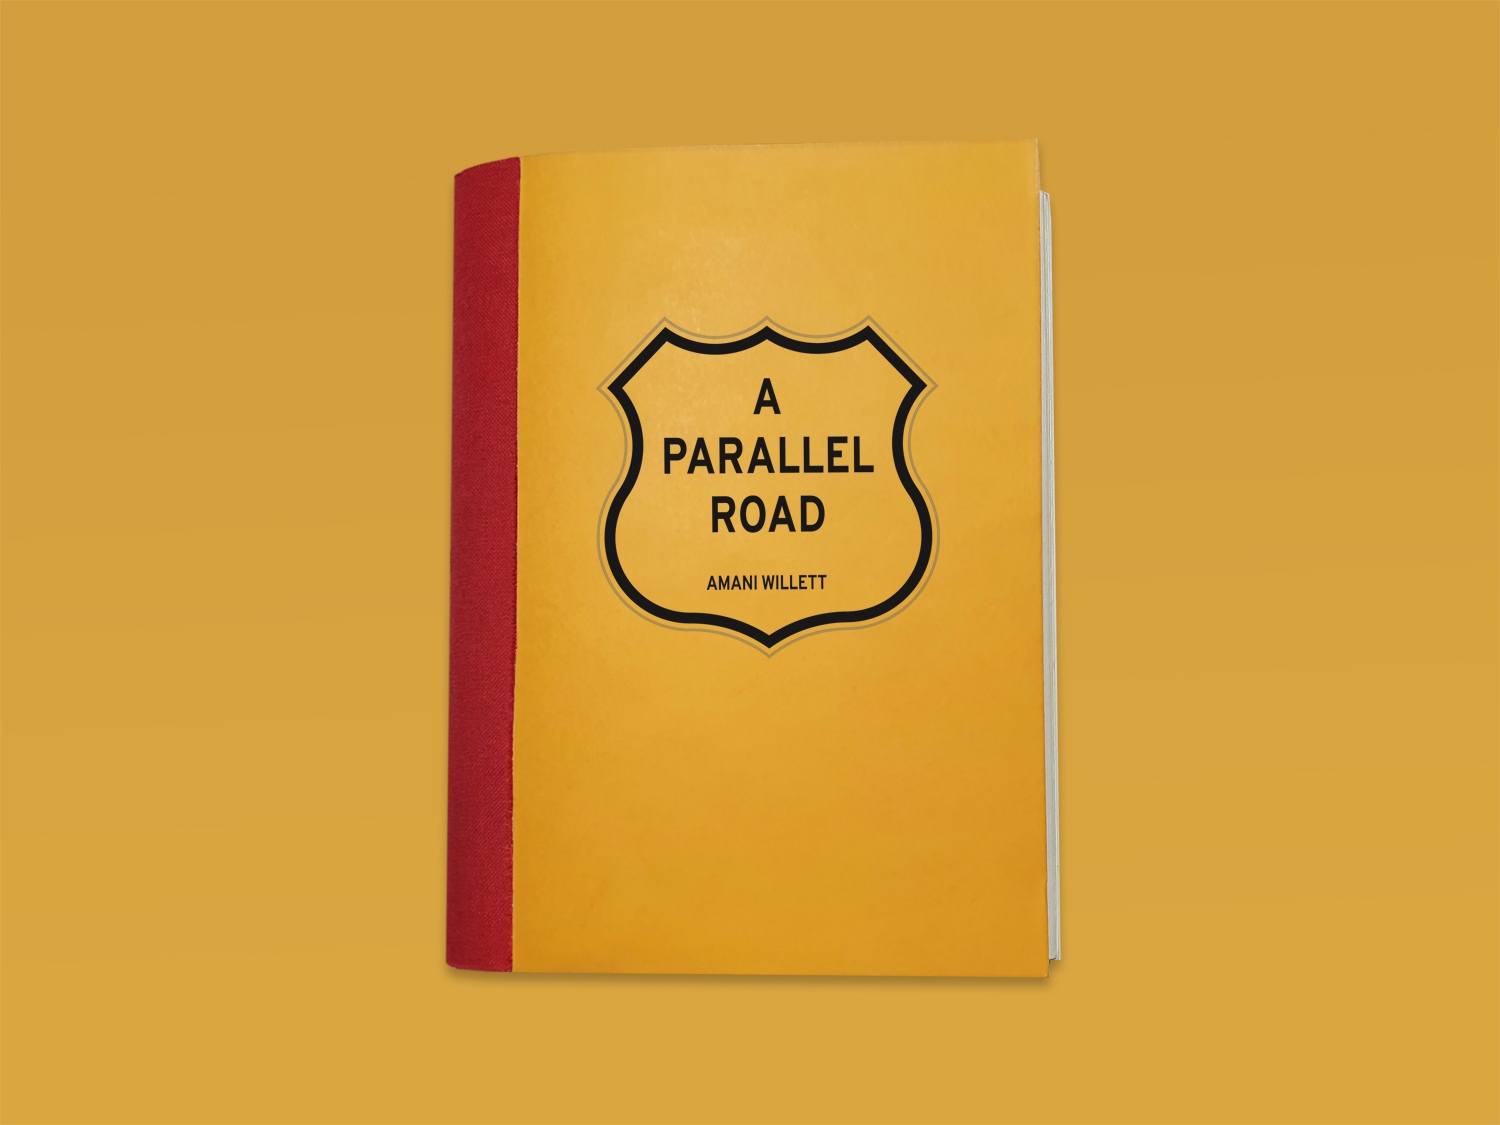 A-Parallel-Rd-Amani-Willett-Overlapse-Book copy